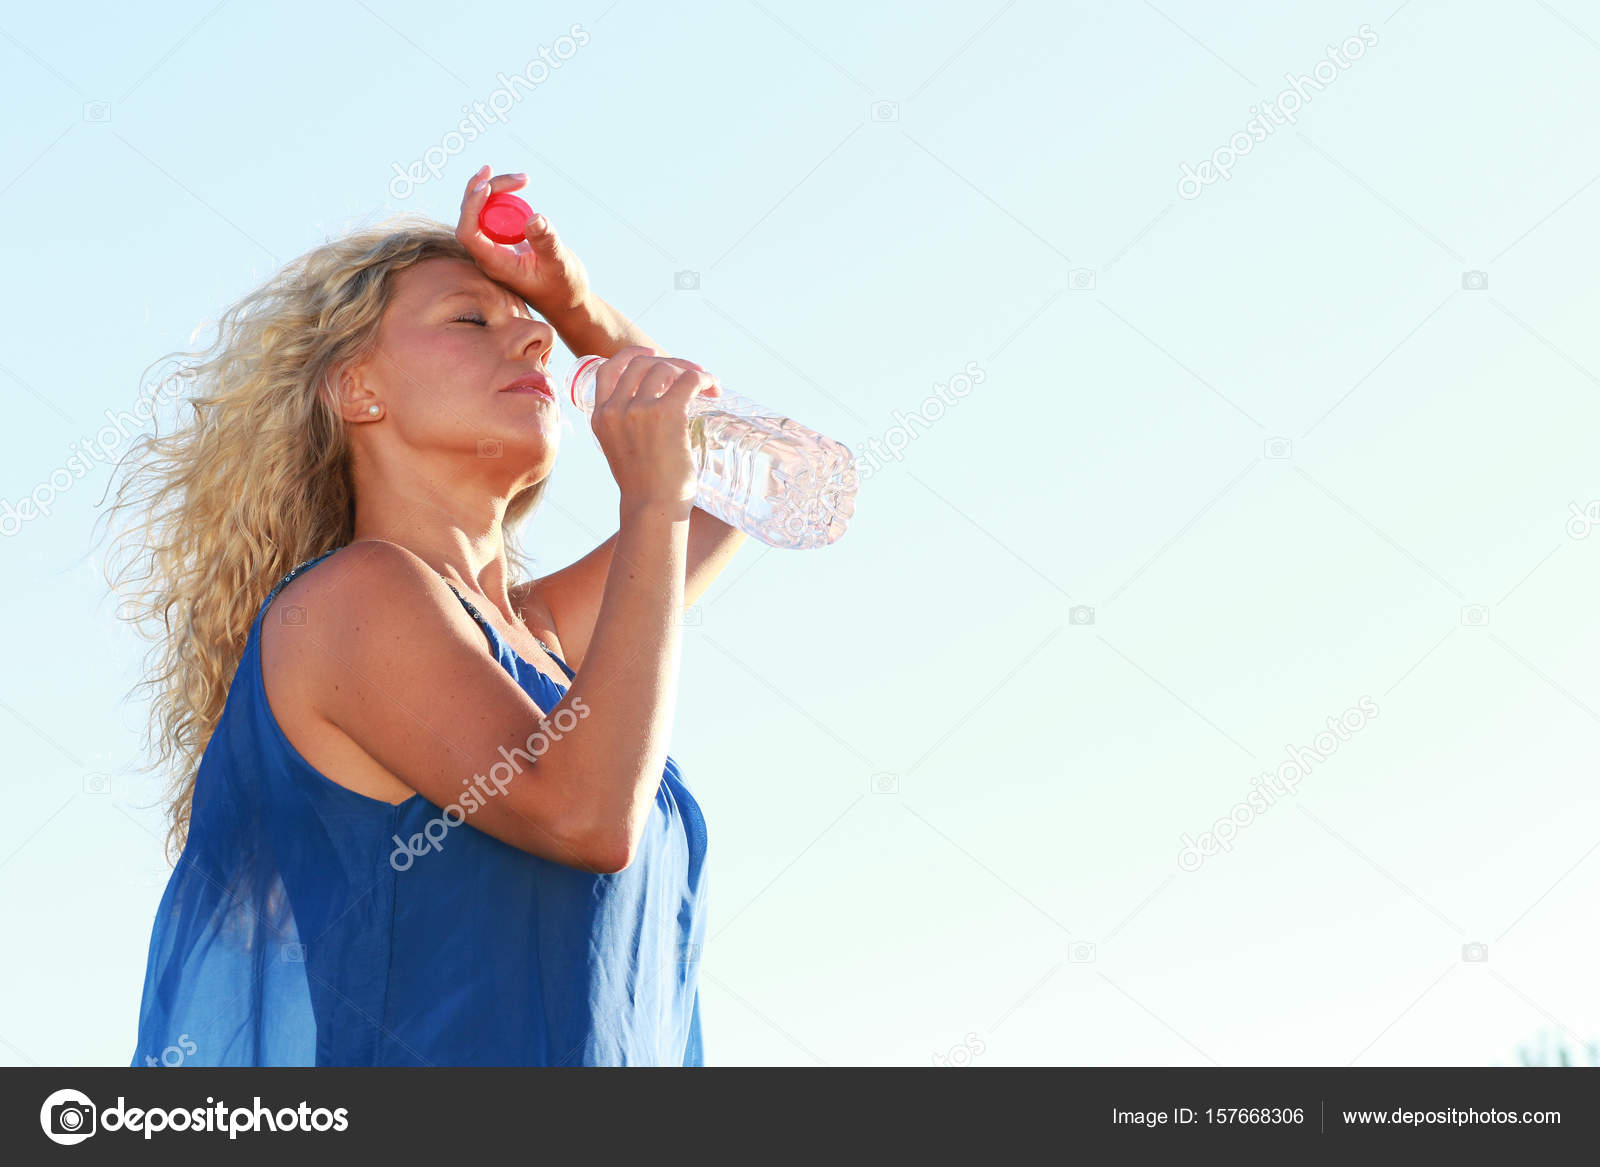 Pubescent Model Mature Women In Water